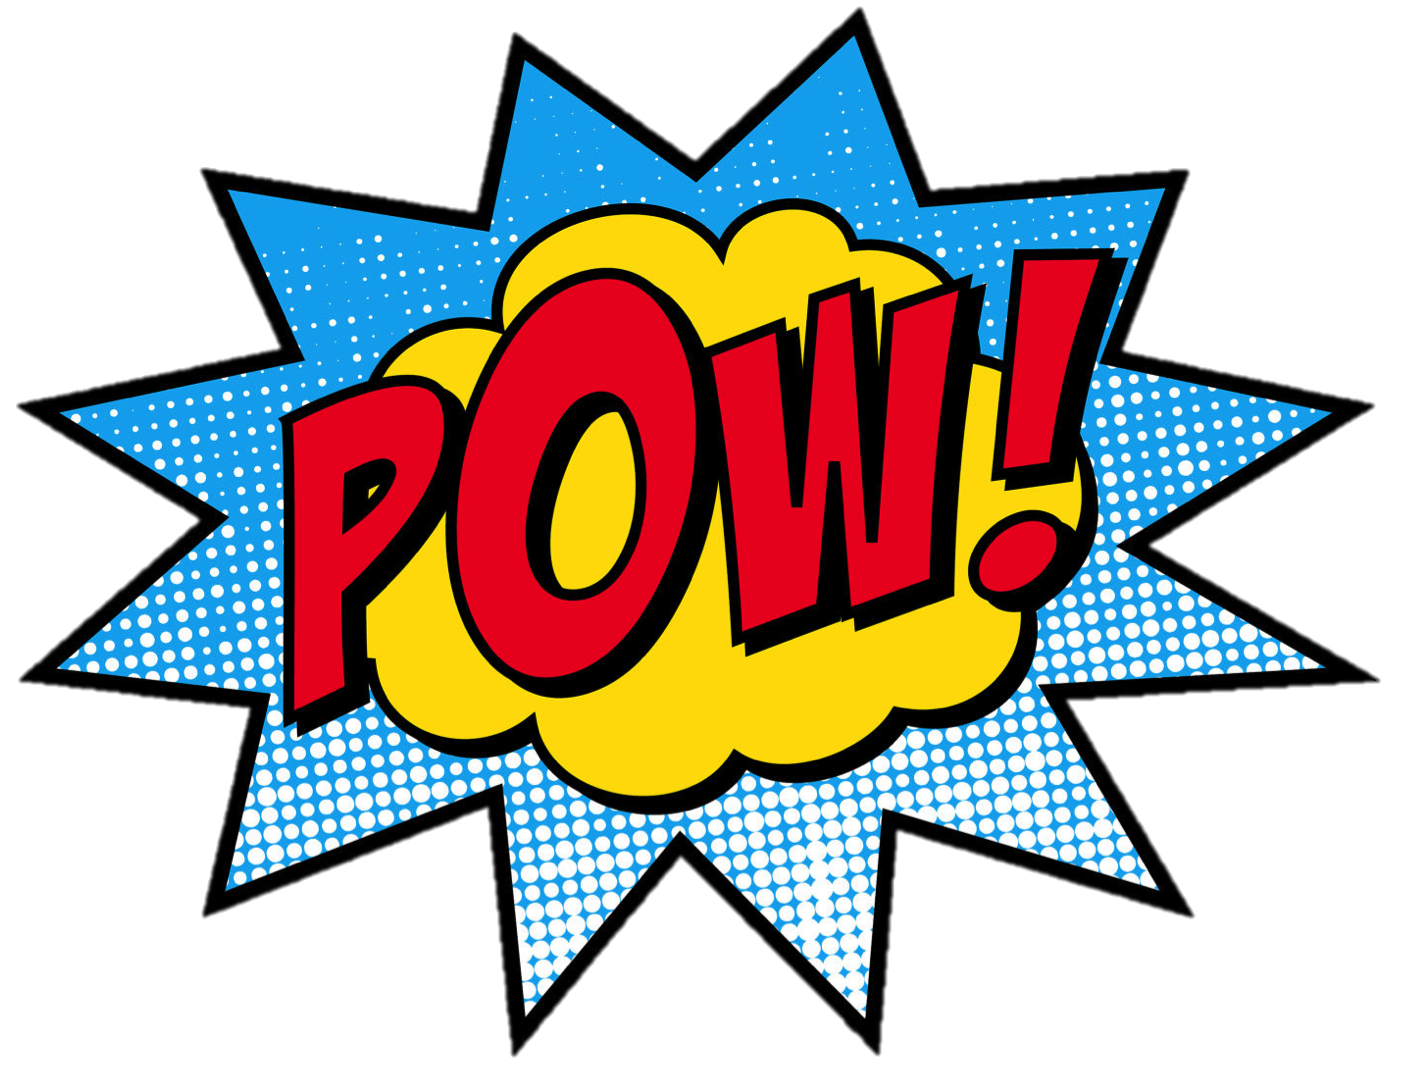 The power of words. Leader clipart superhero